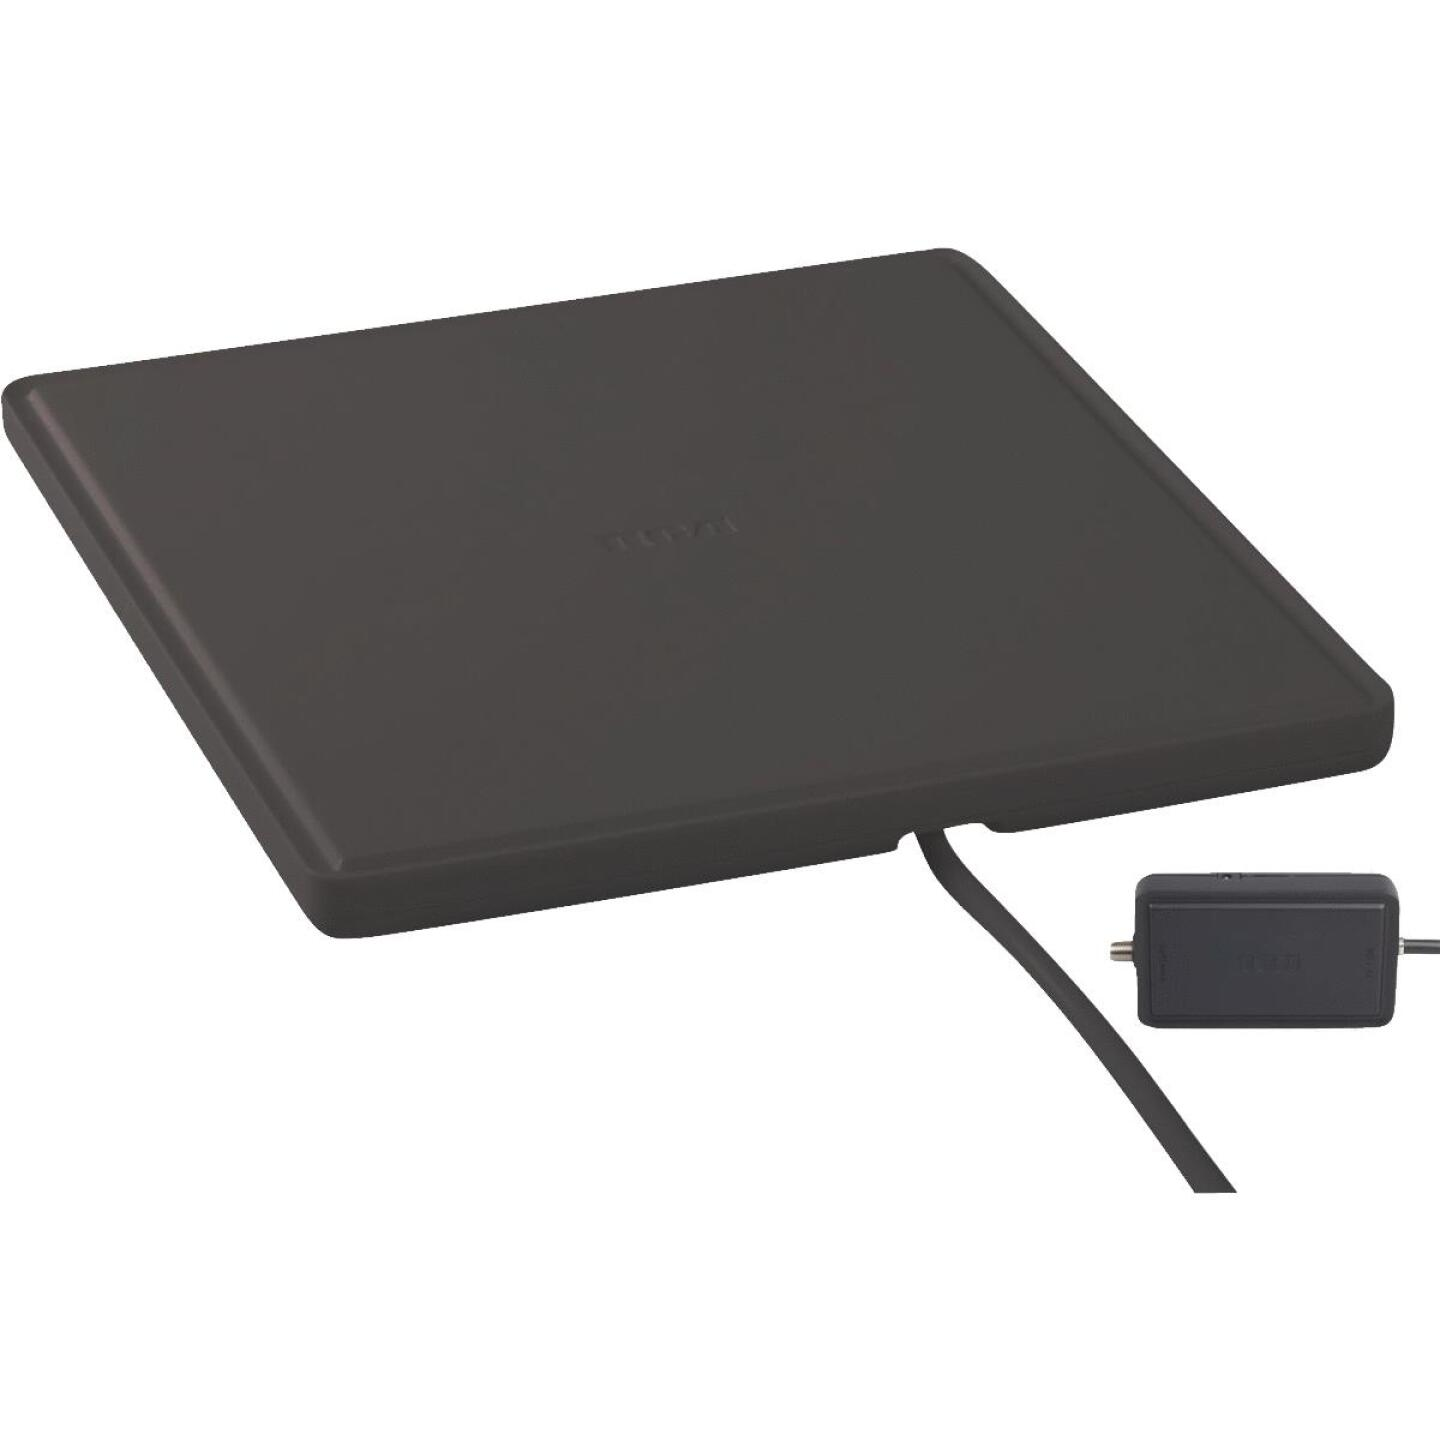 RCA Platinum Series Black 8.53 In. Amplified Flat Indoor Antenna Image 1